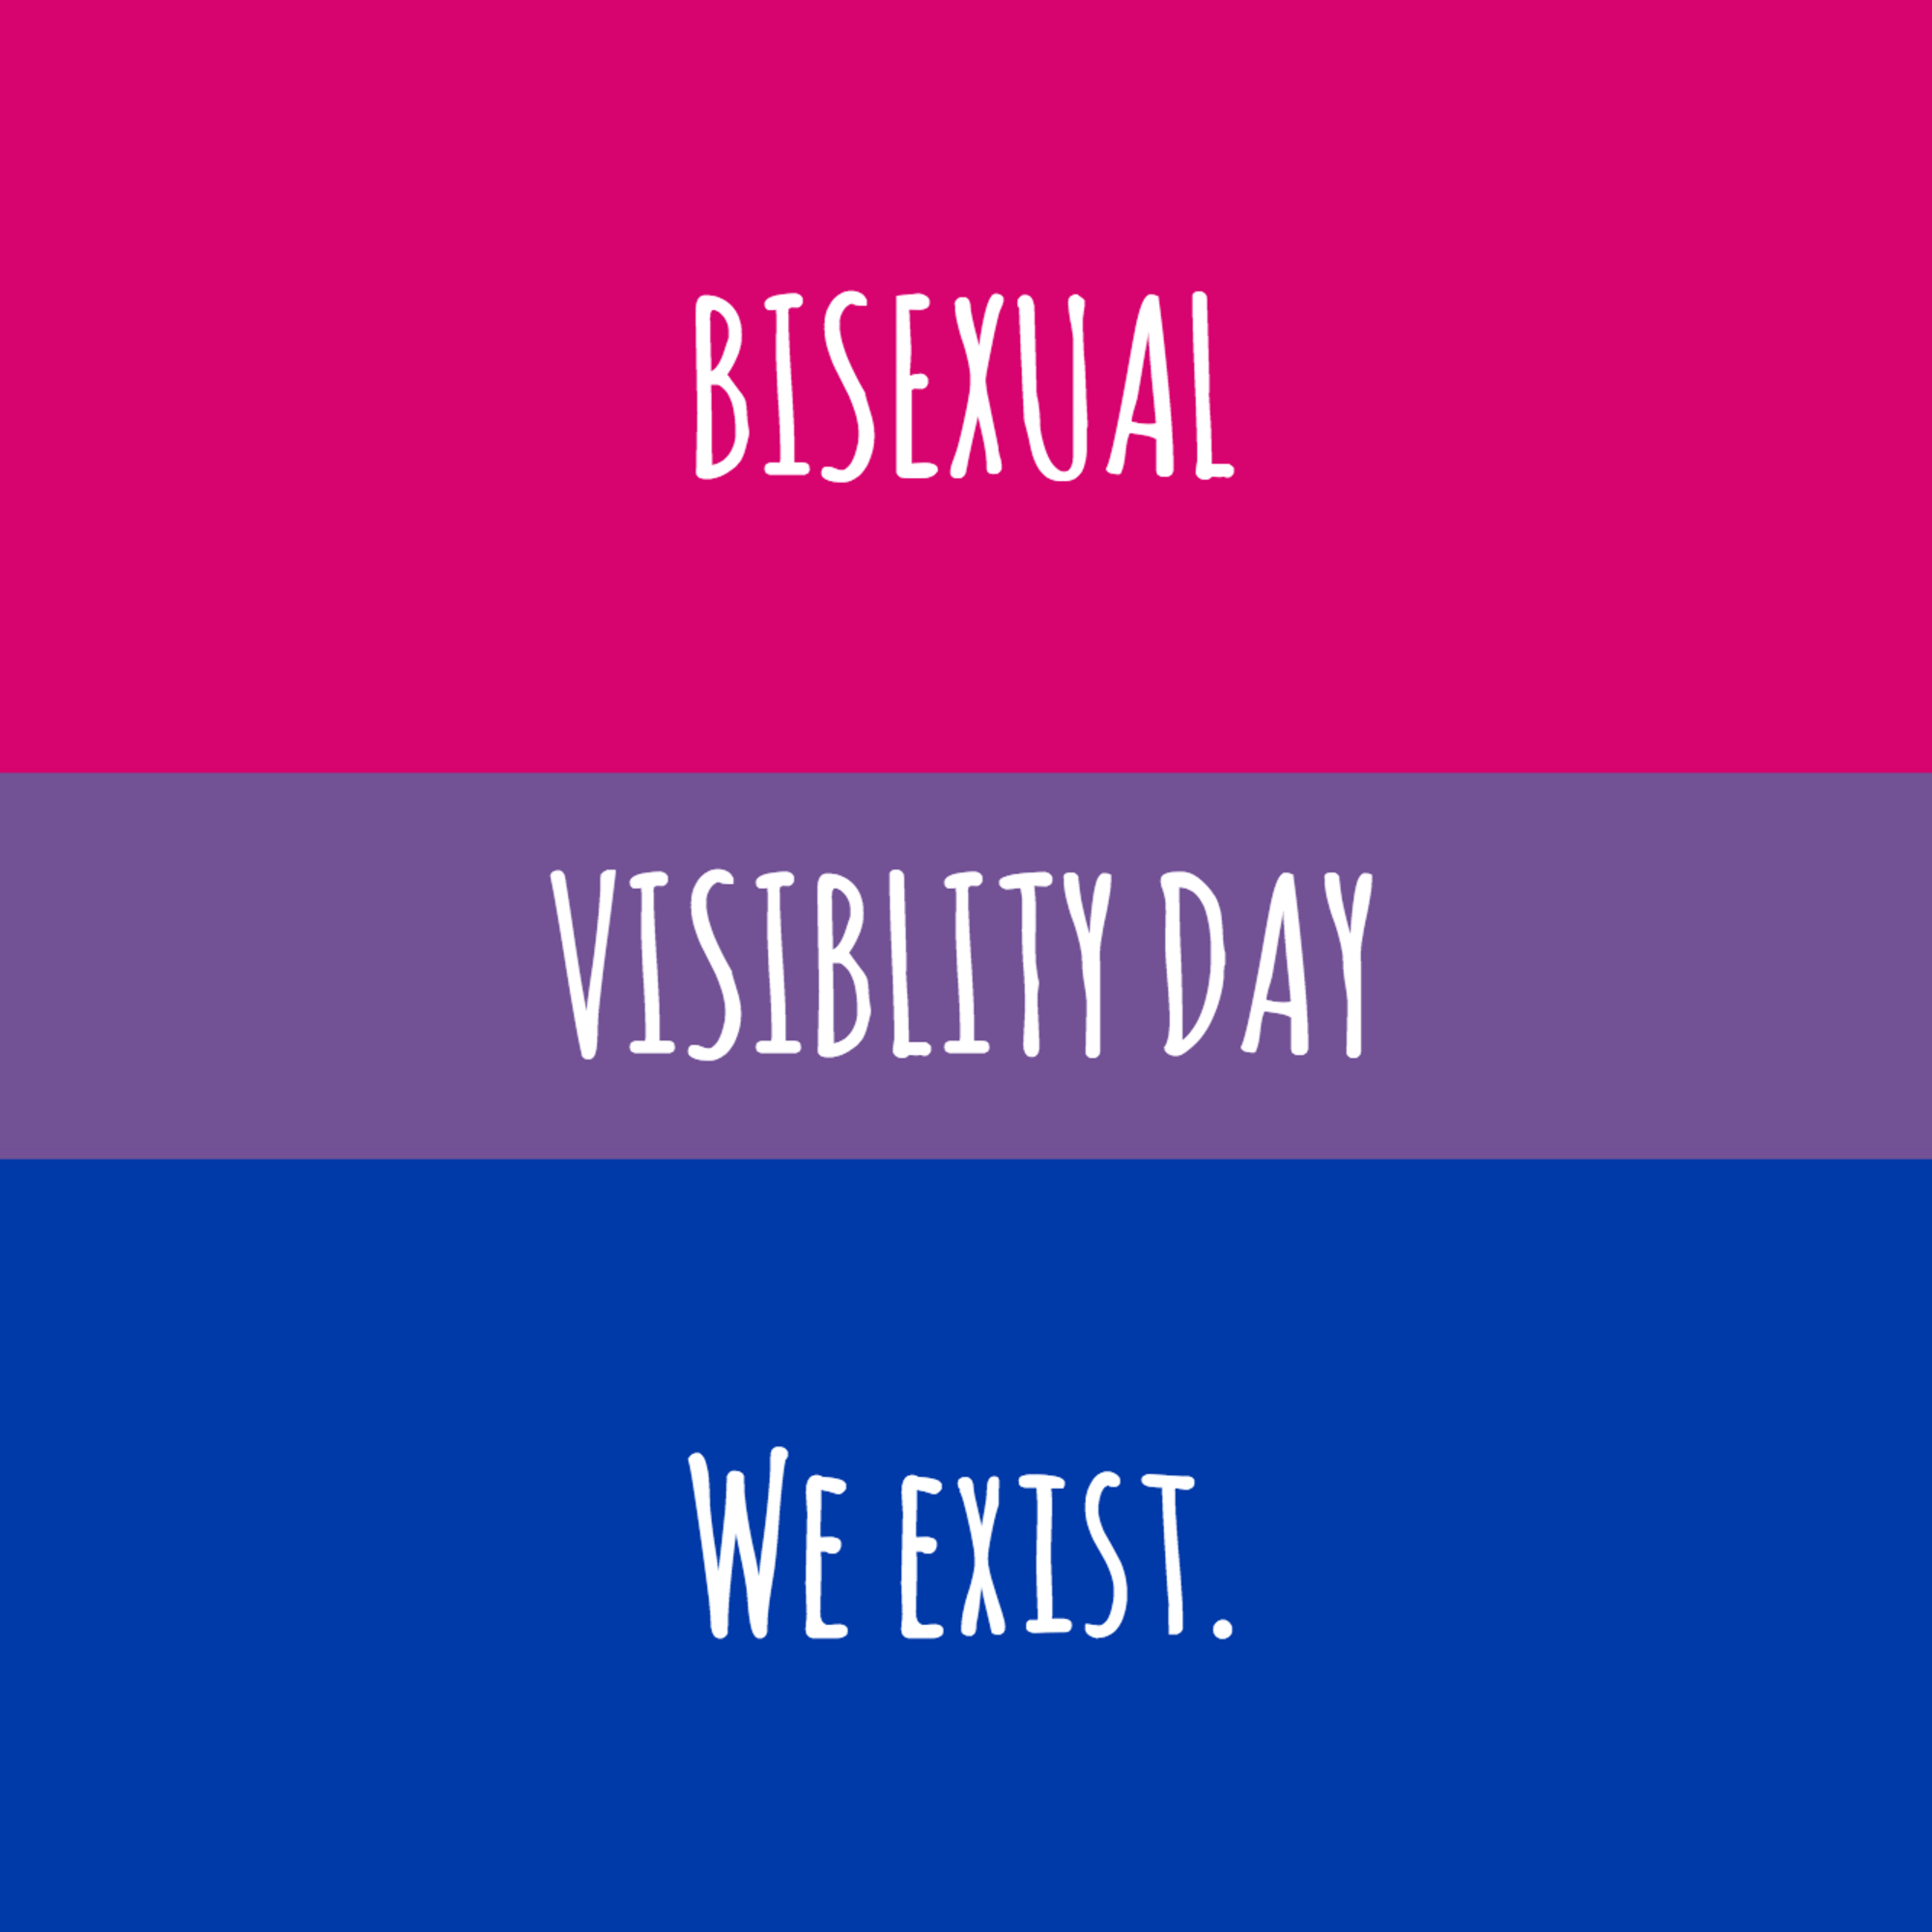 Disaggregating The Data For Bisexual People